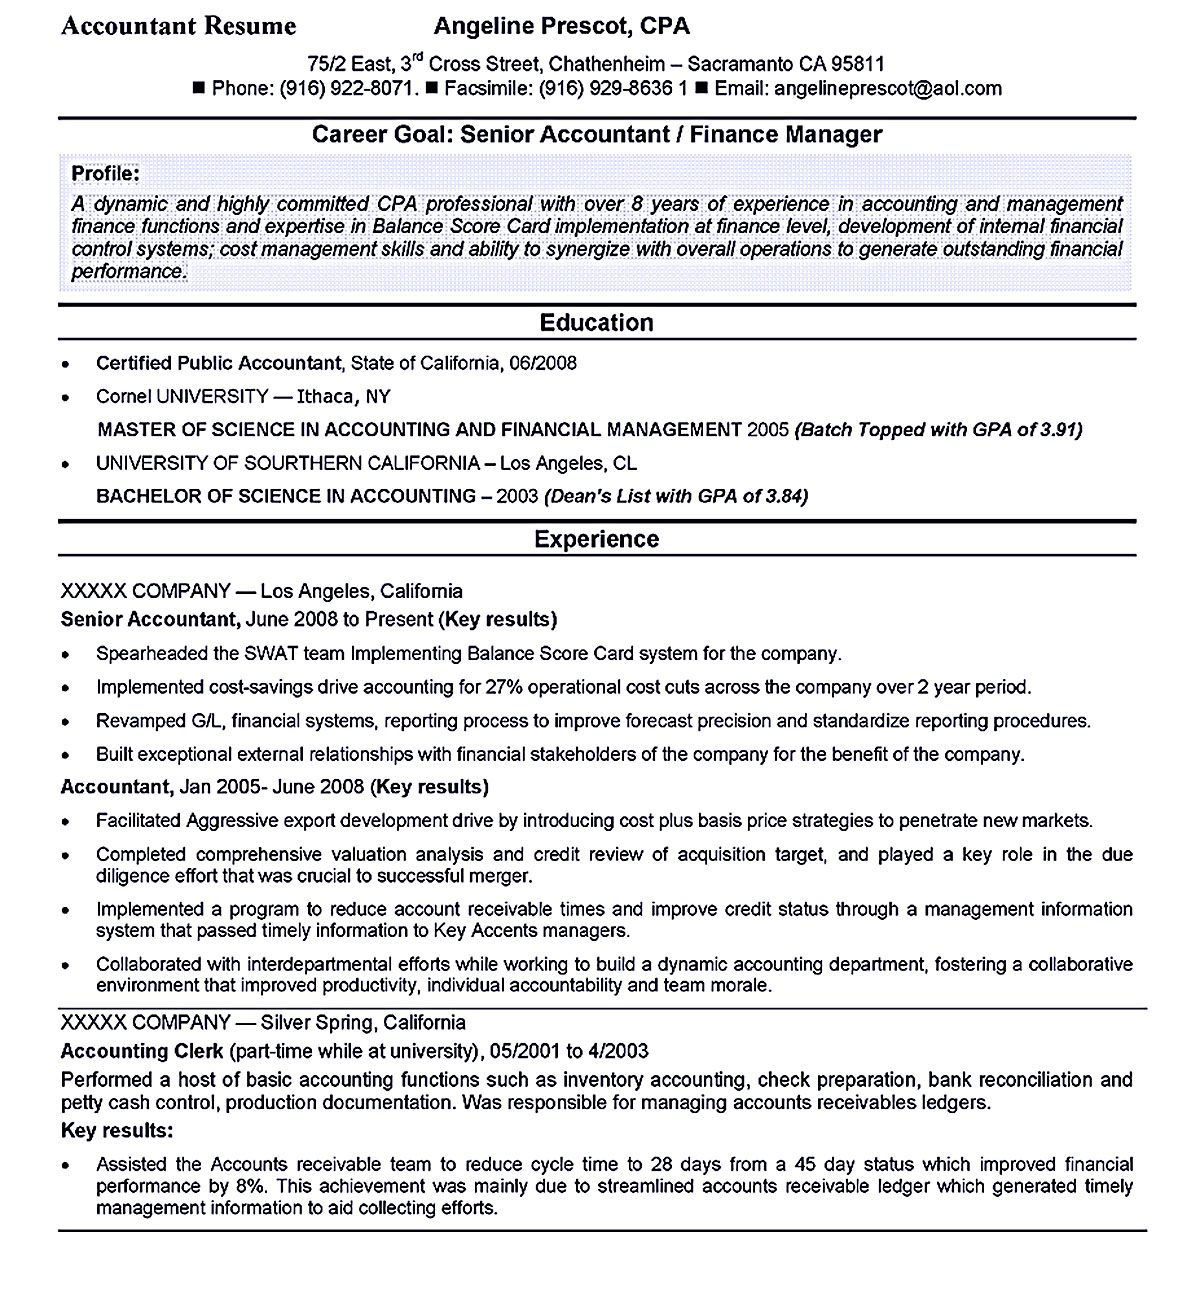 Account Receivable Resume Accountant Resume Template Here Helps You In Boosting Your Career